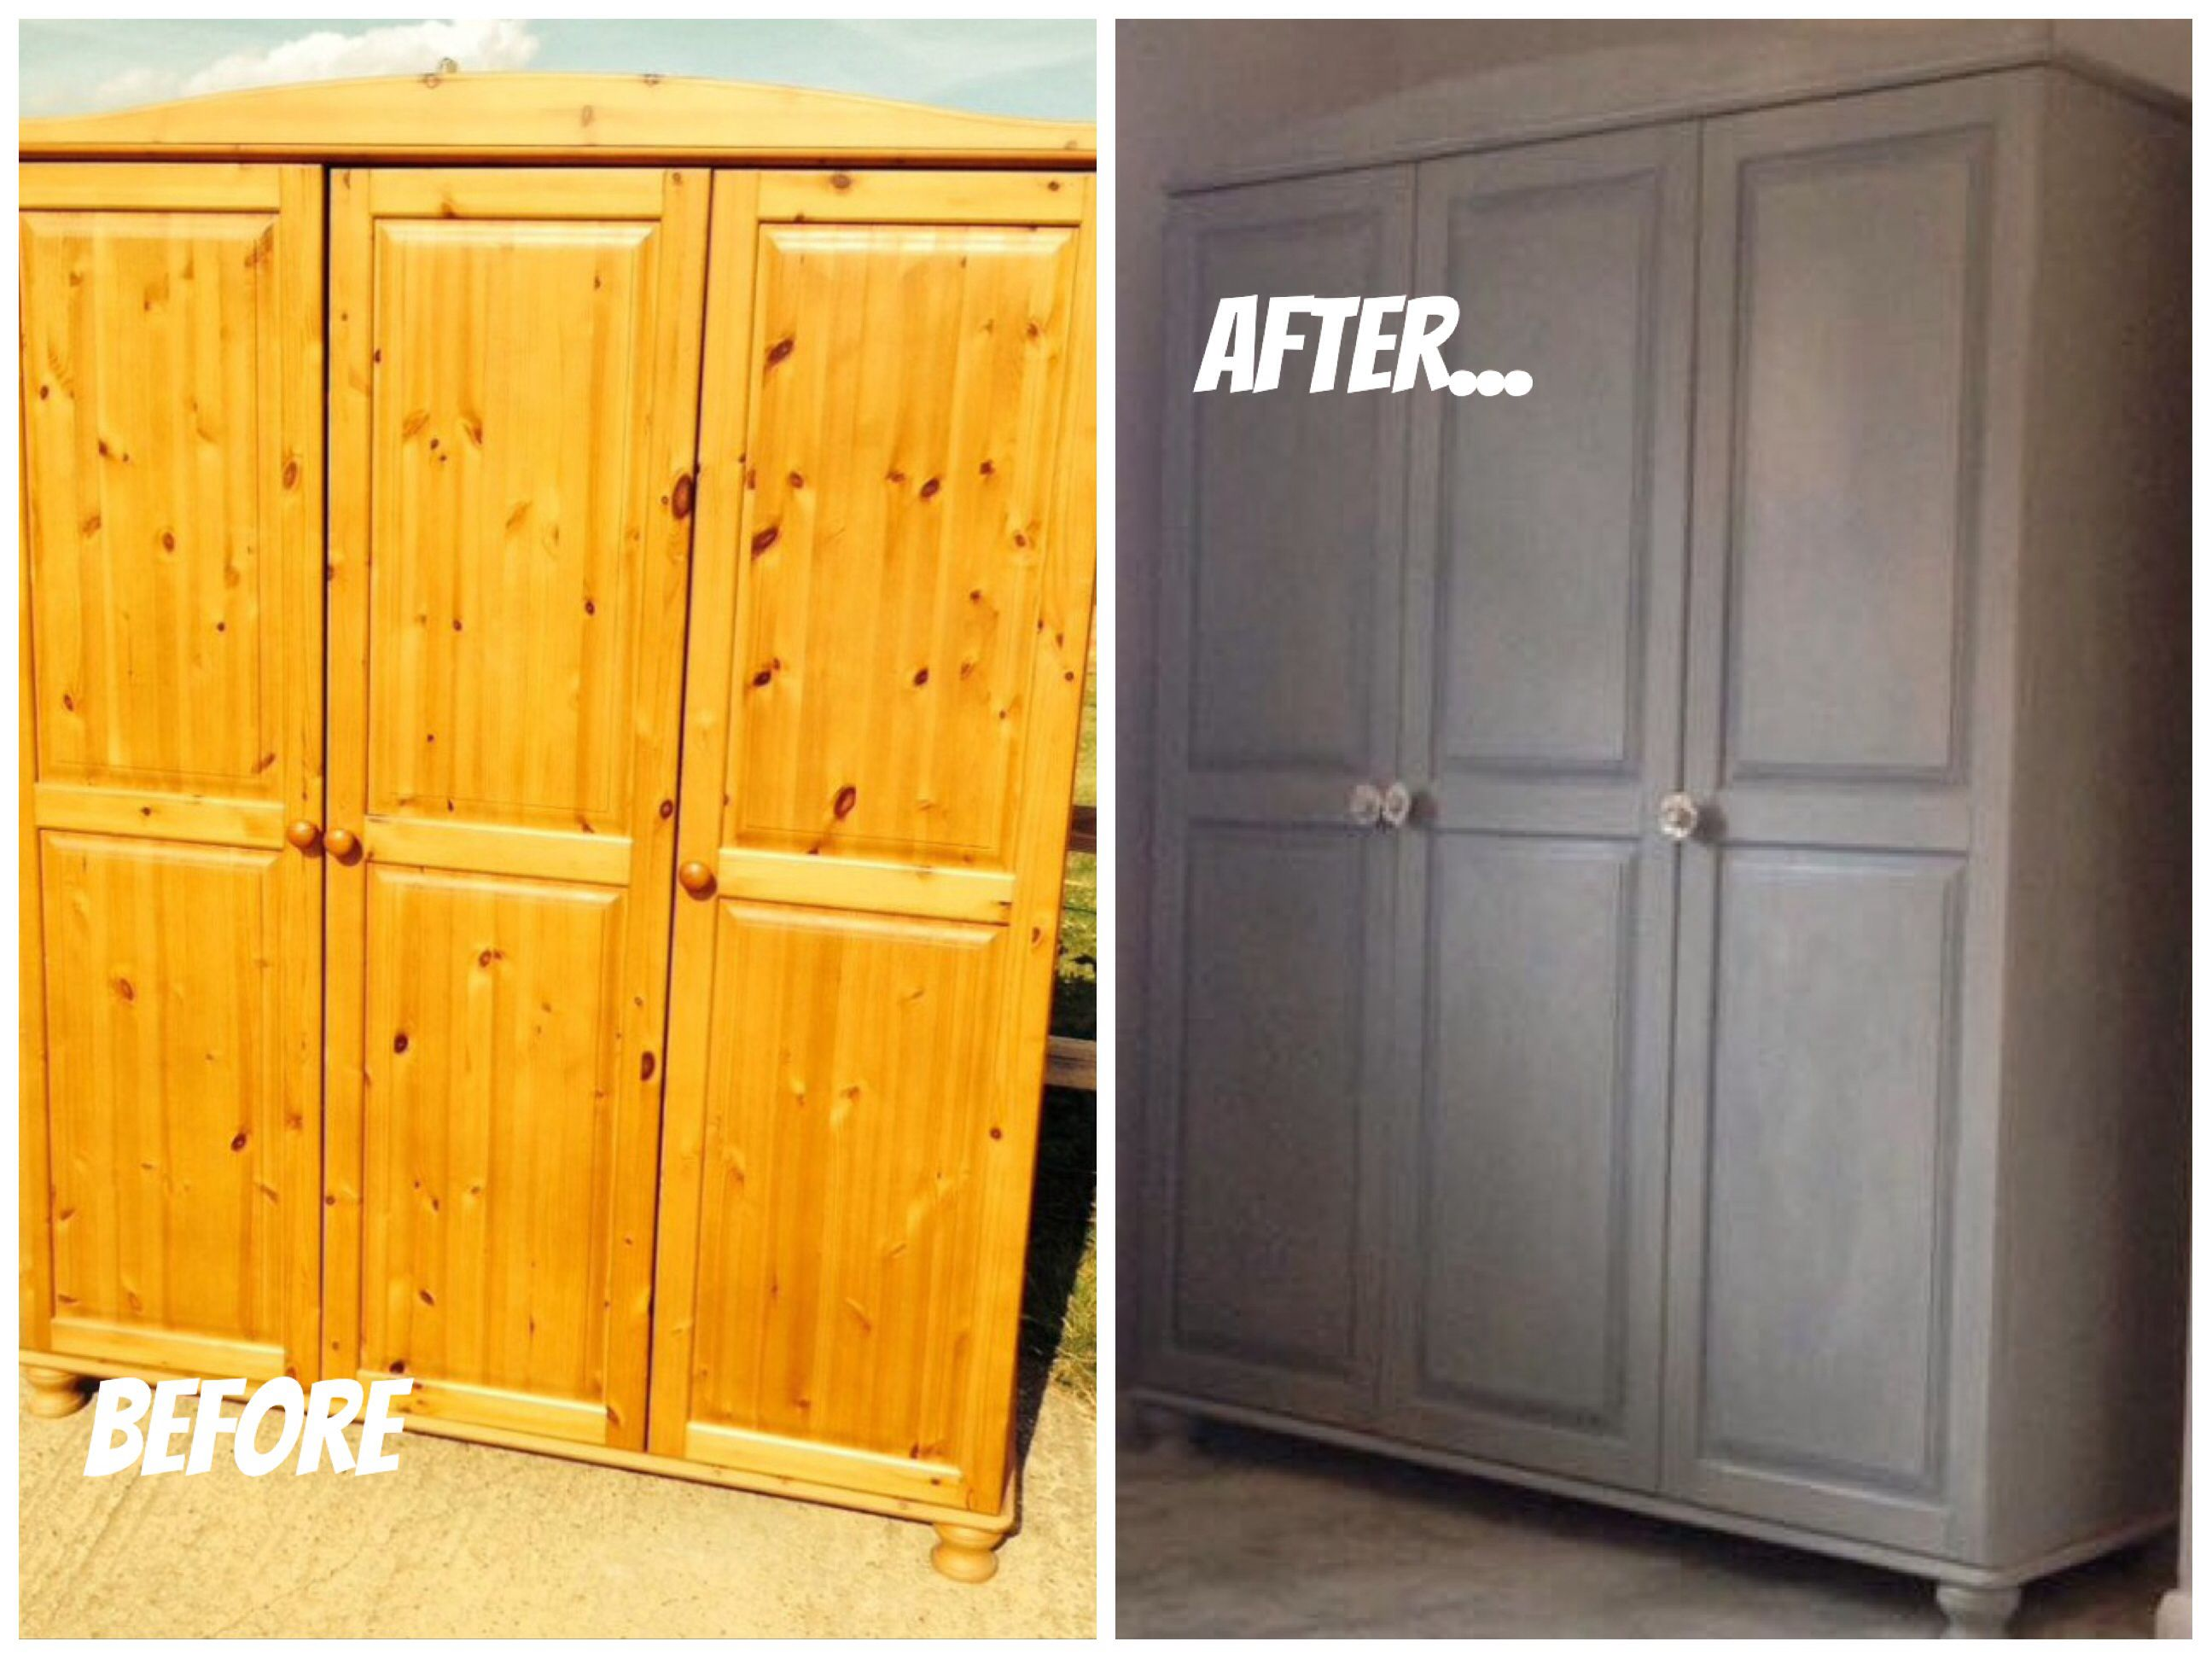 Painted furniture ideas before and after - Before And After Of My Triple Wardrobe